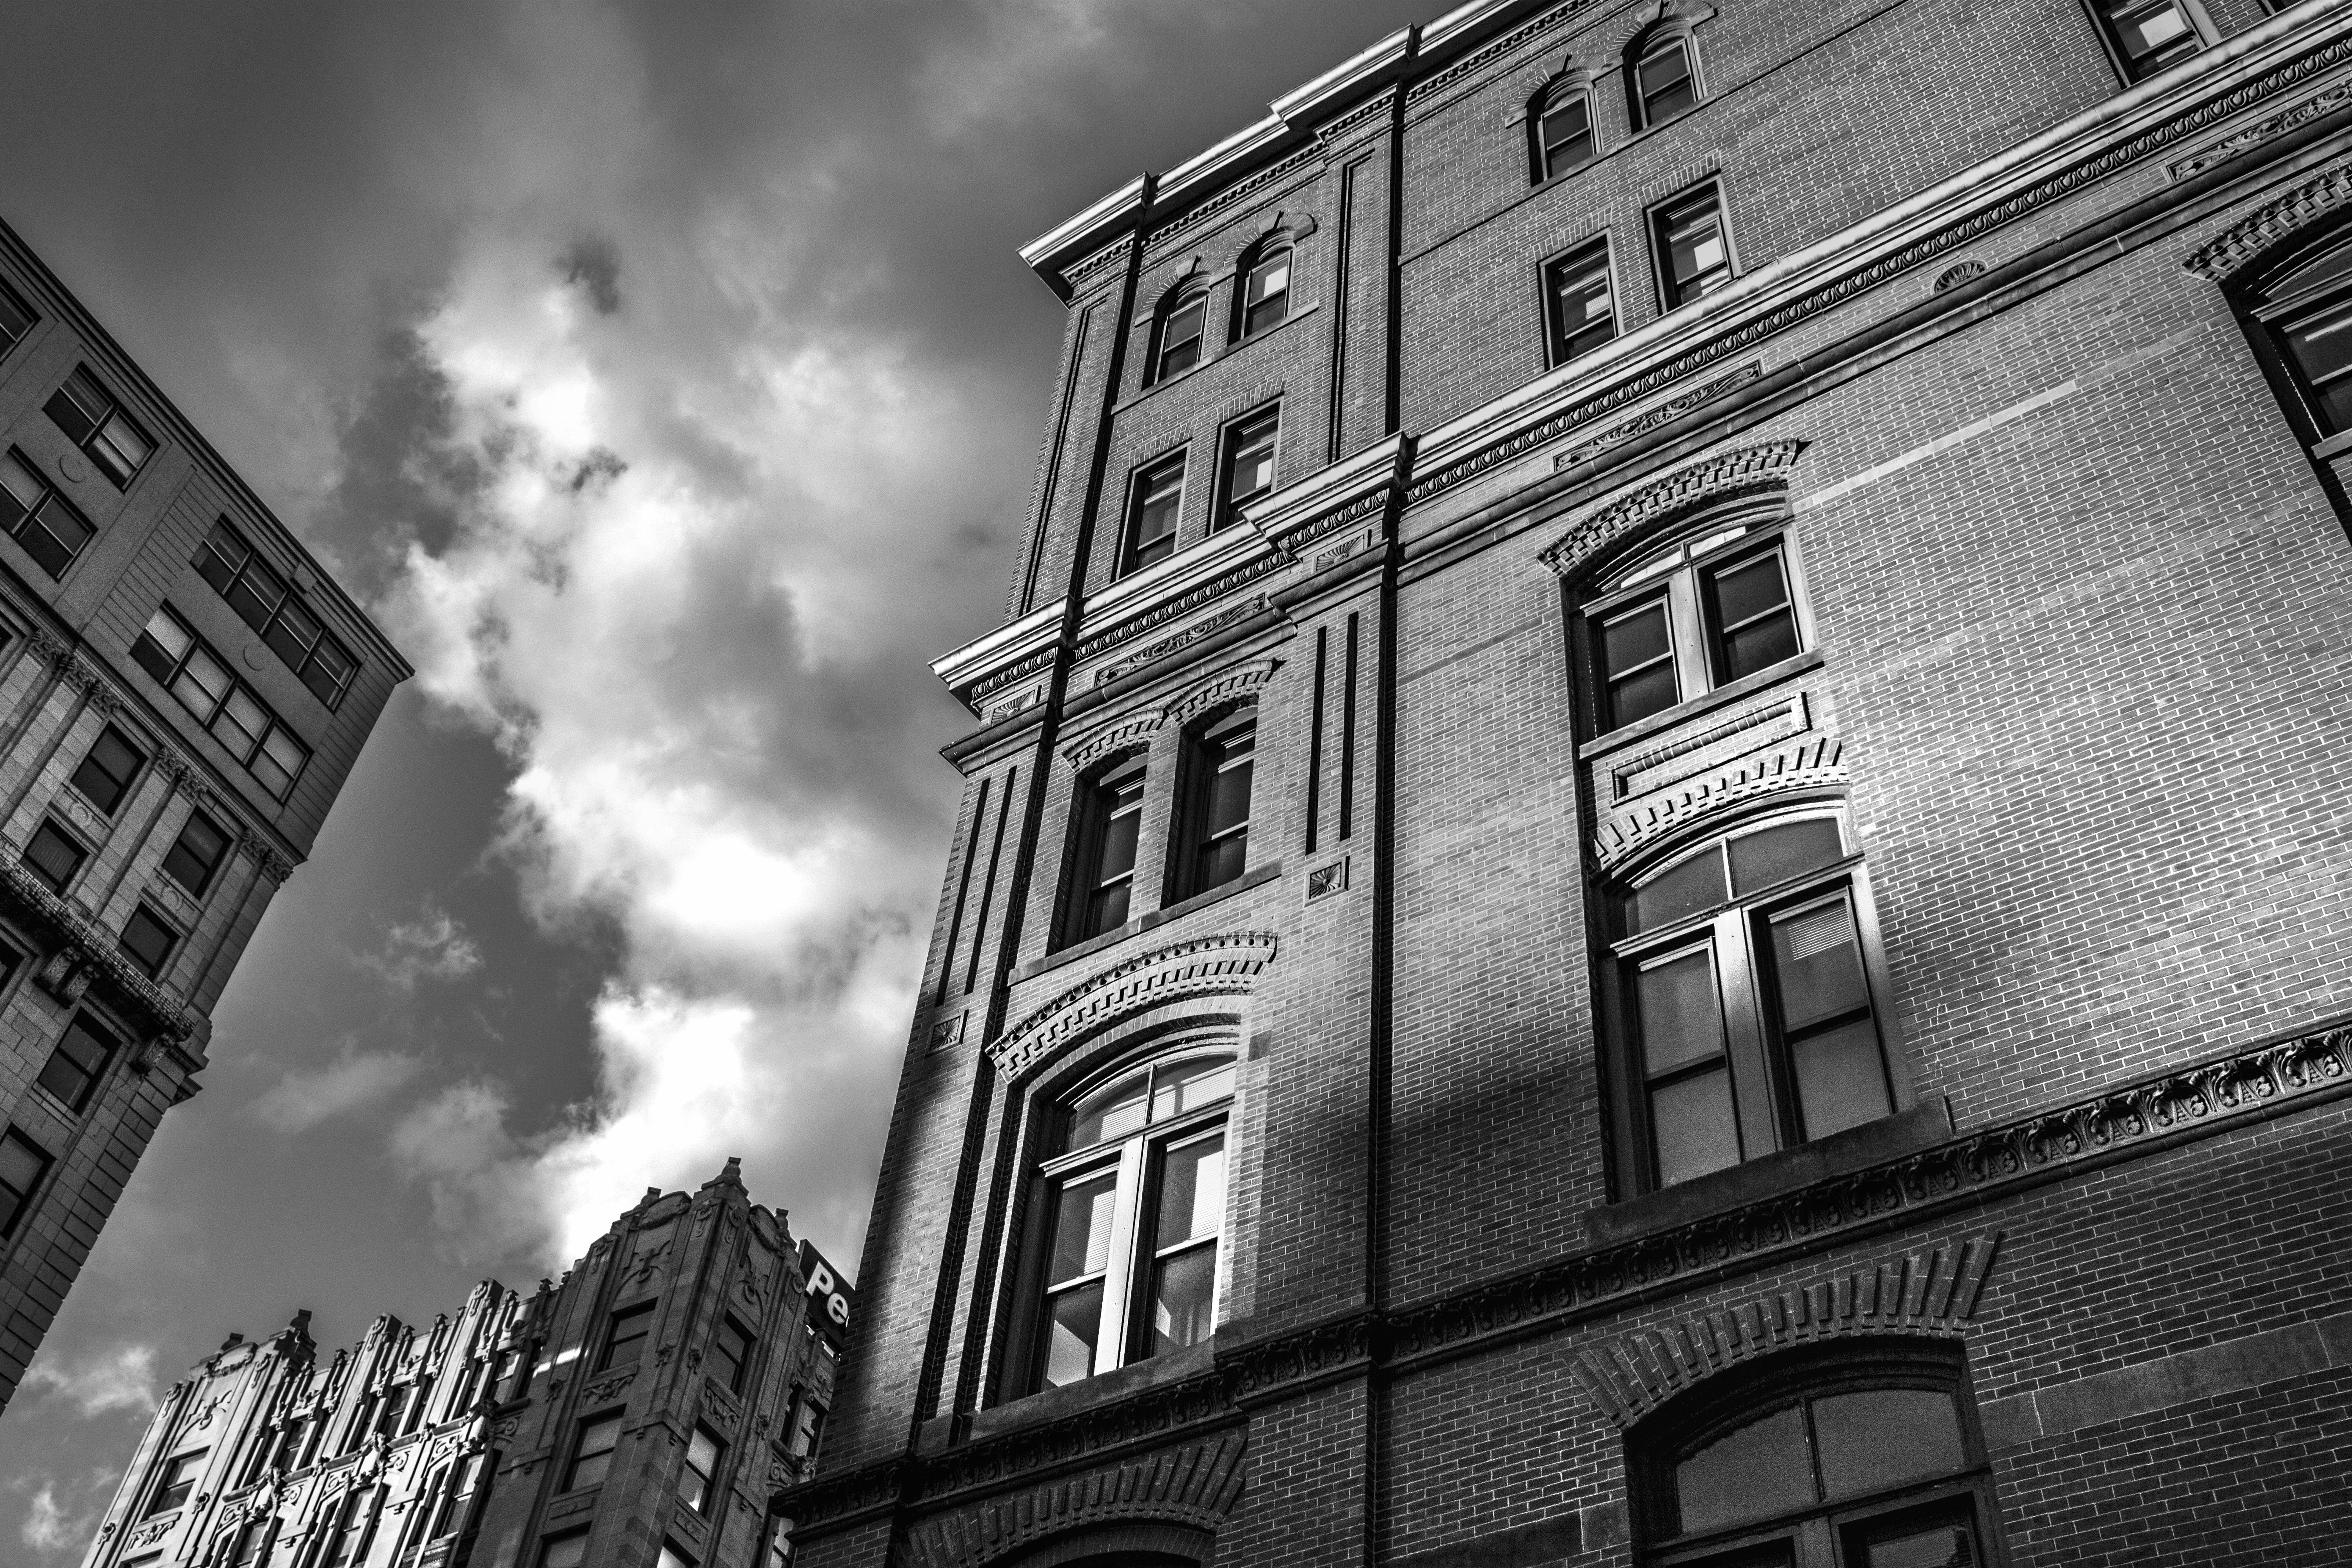 black-and-white, buildings, city